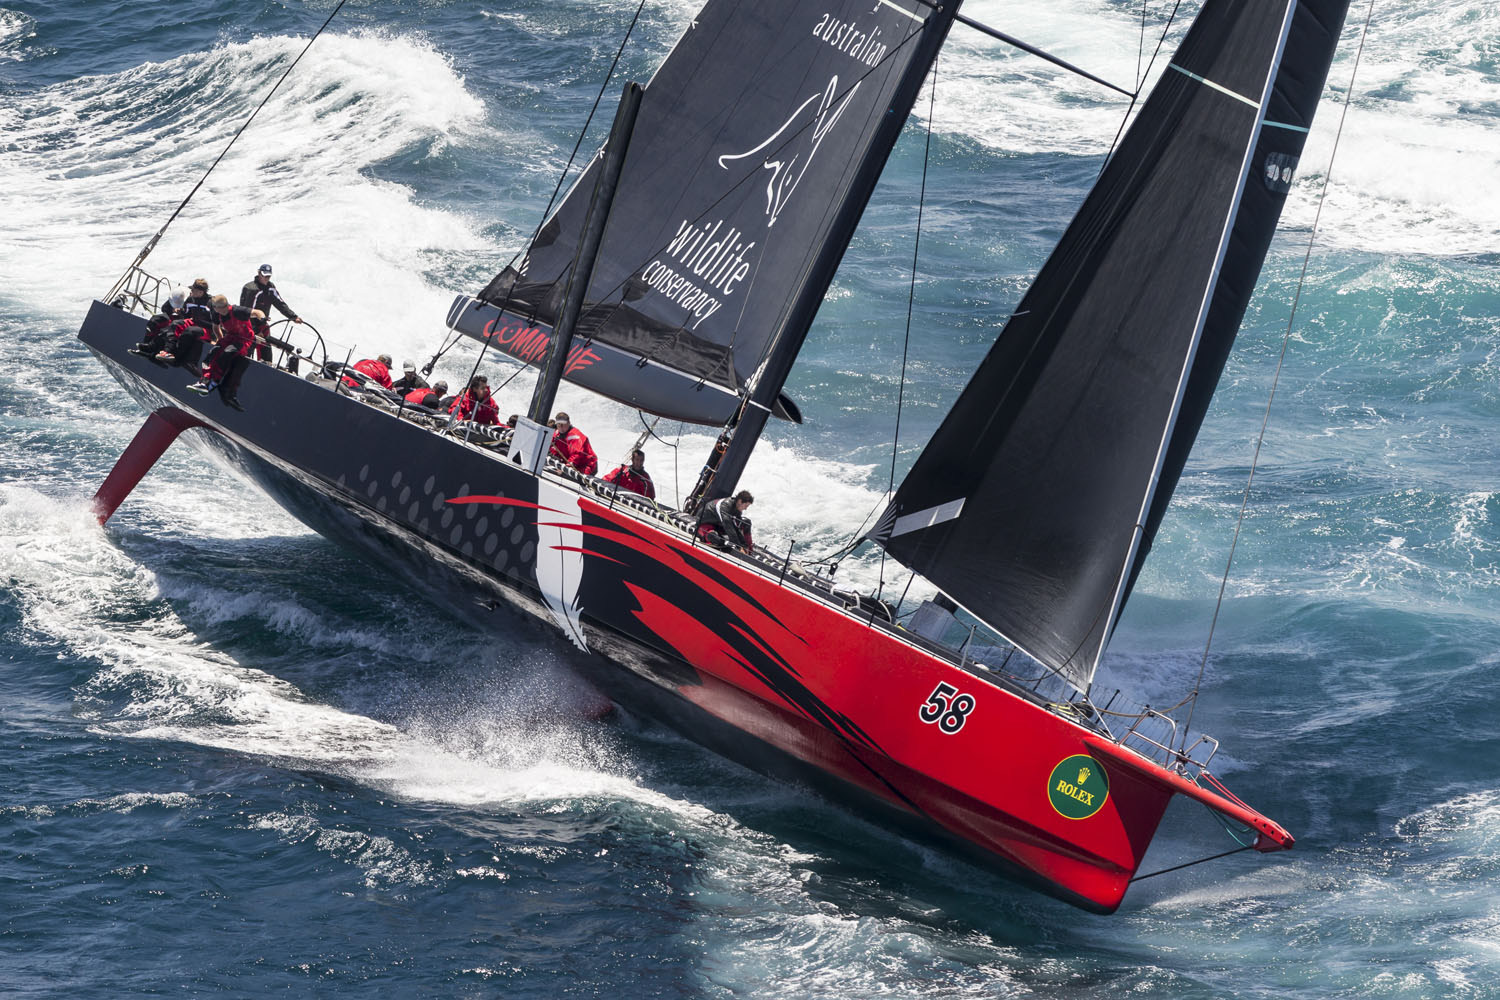 Comanche Destined For Rolex Sydney Hobart Credit Rolex